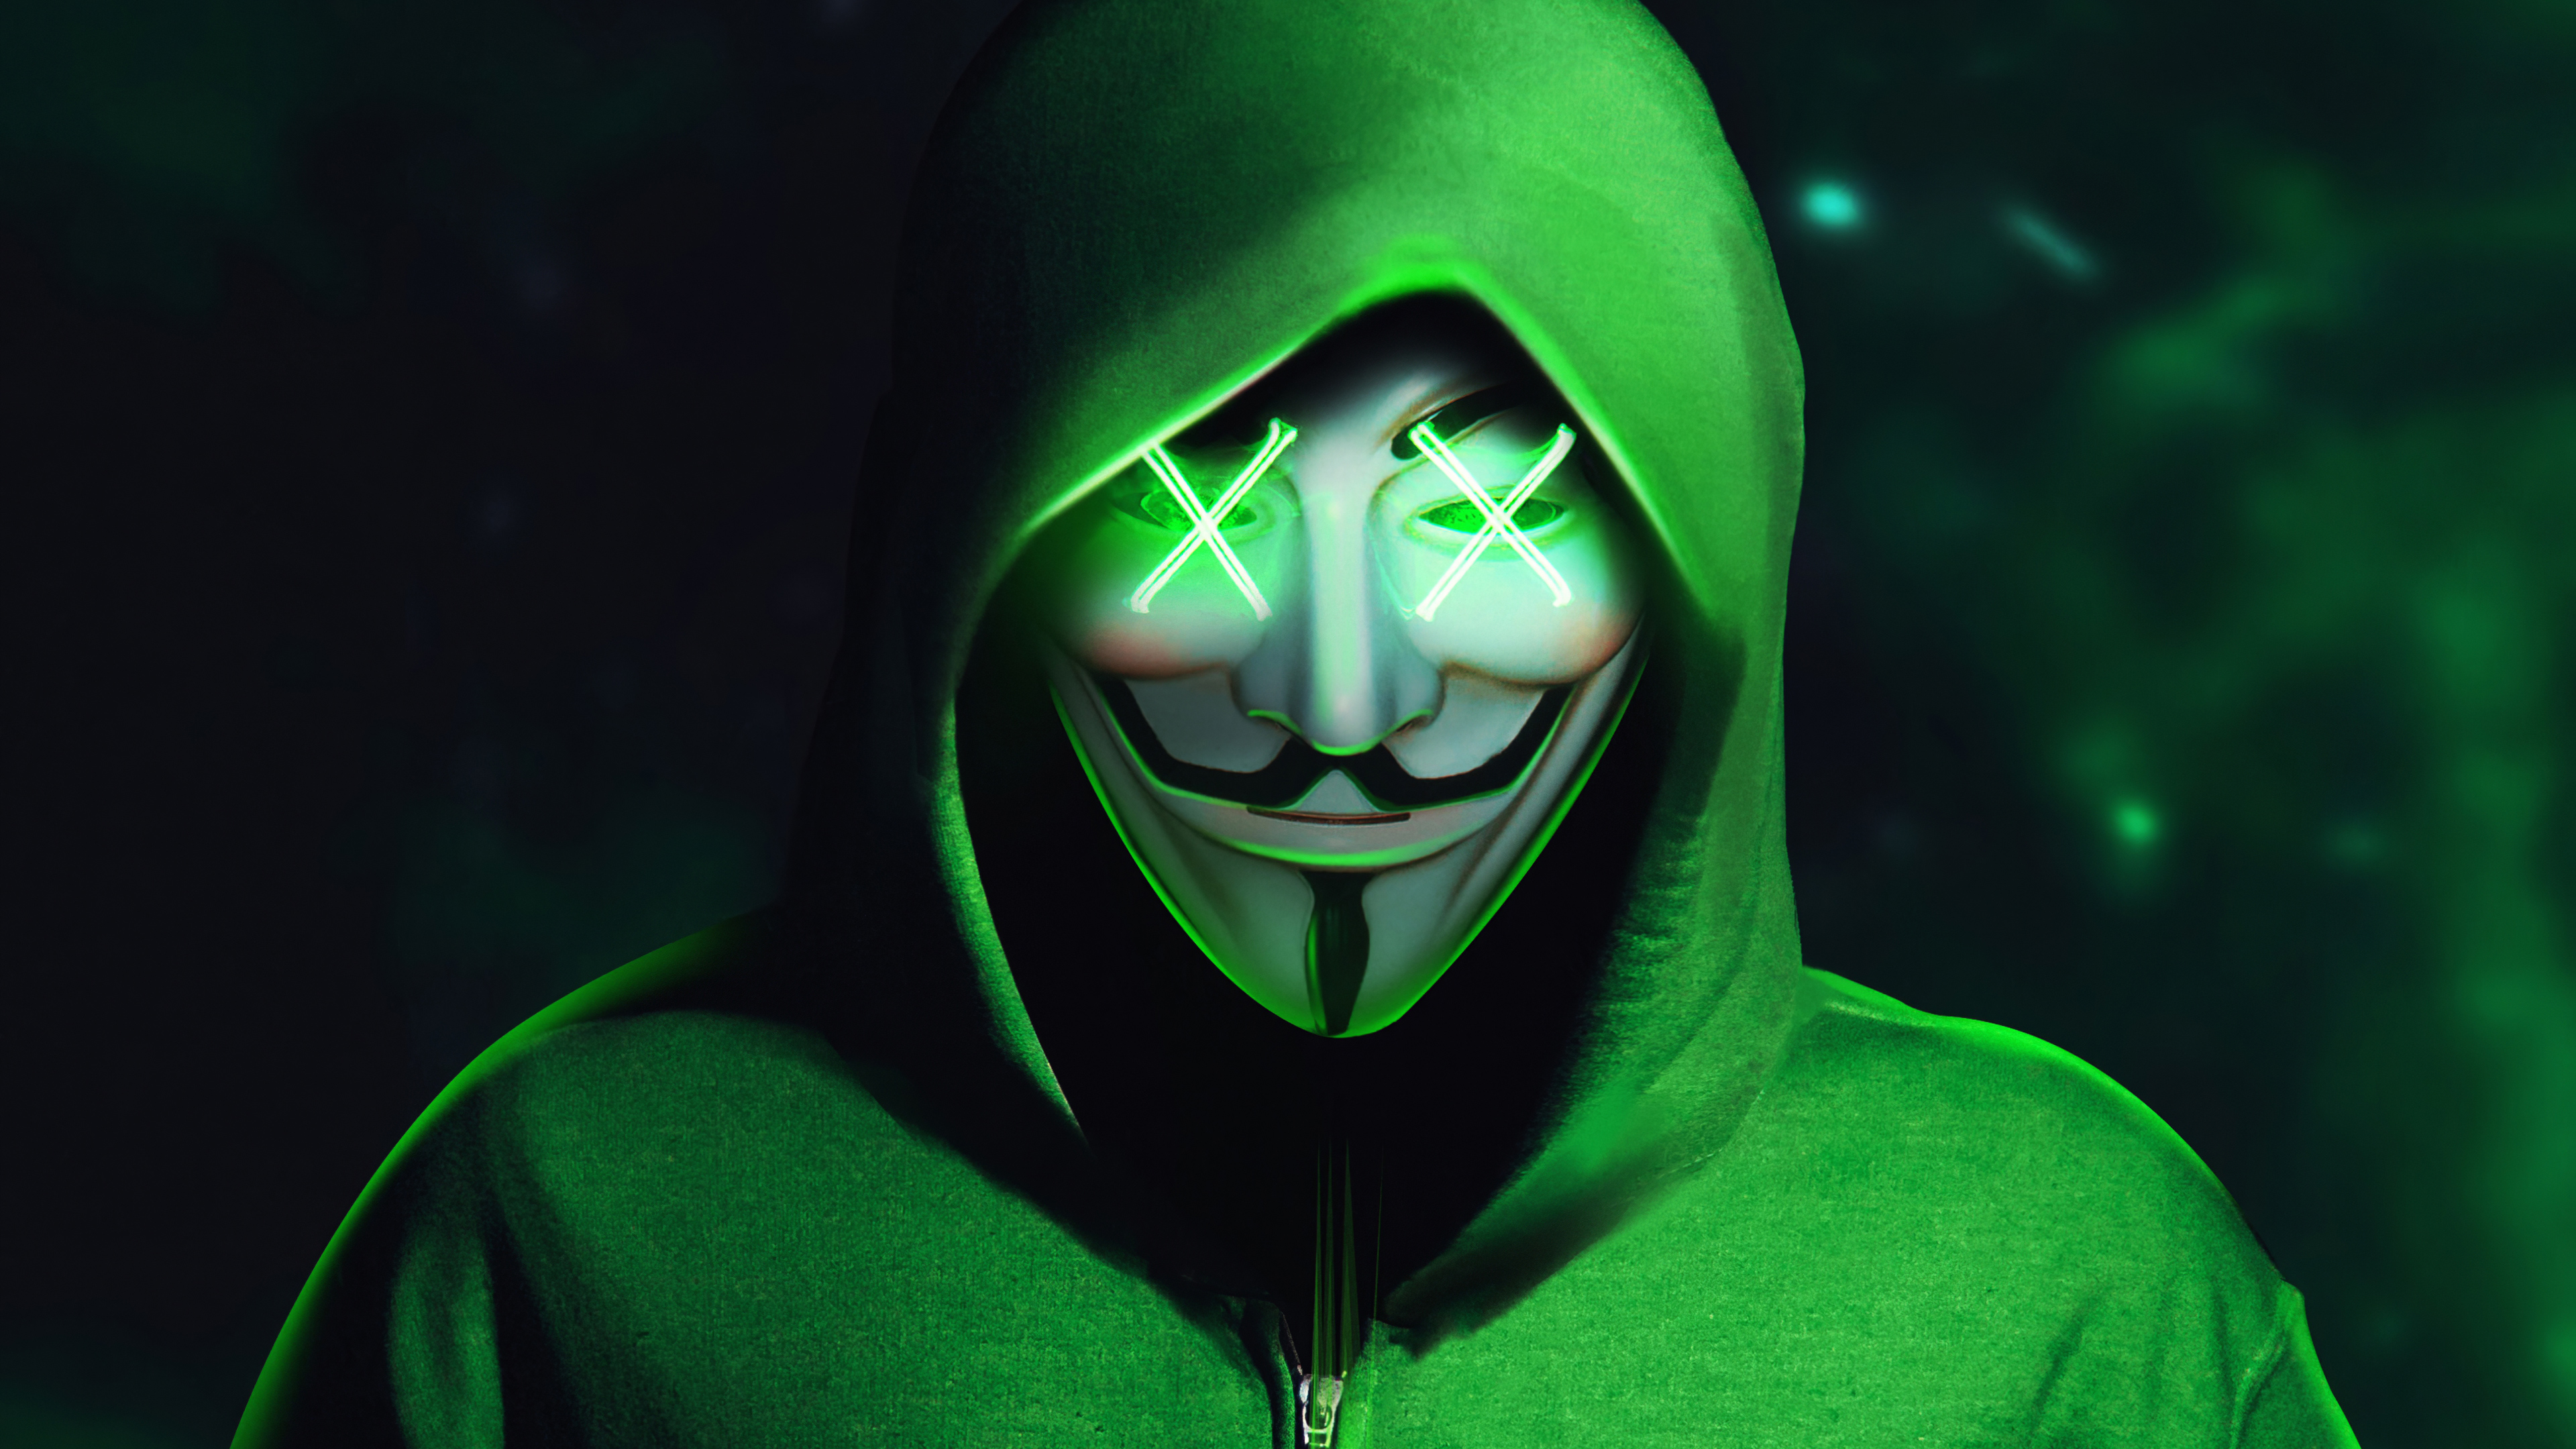 green hoodie anonymus mask 1580055627 - Green Hoodie Anonymus Mask -